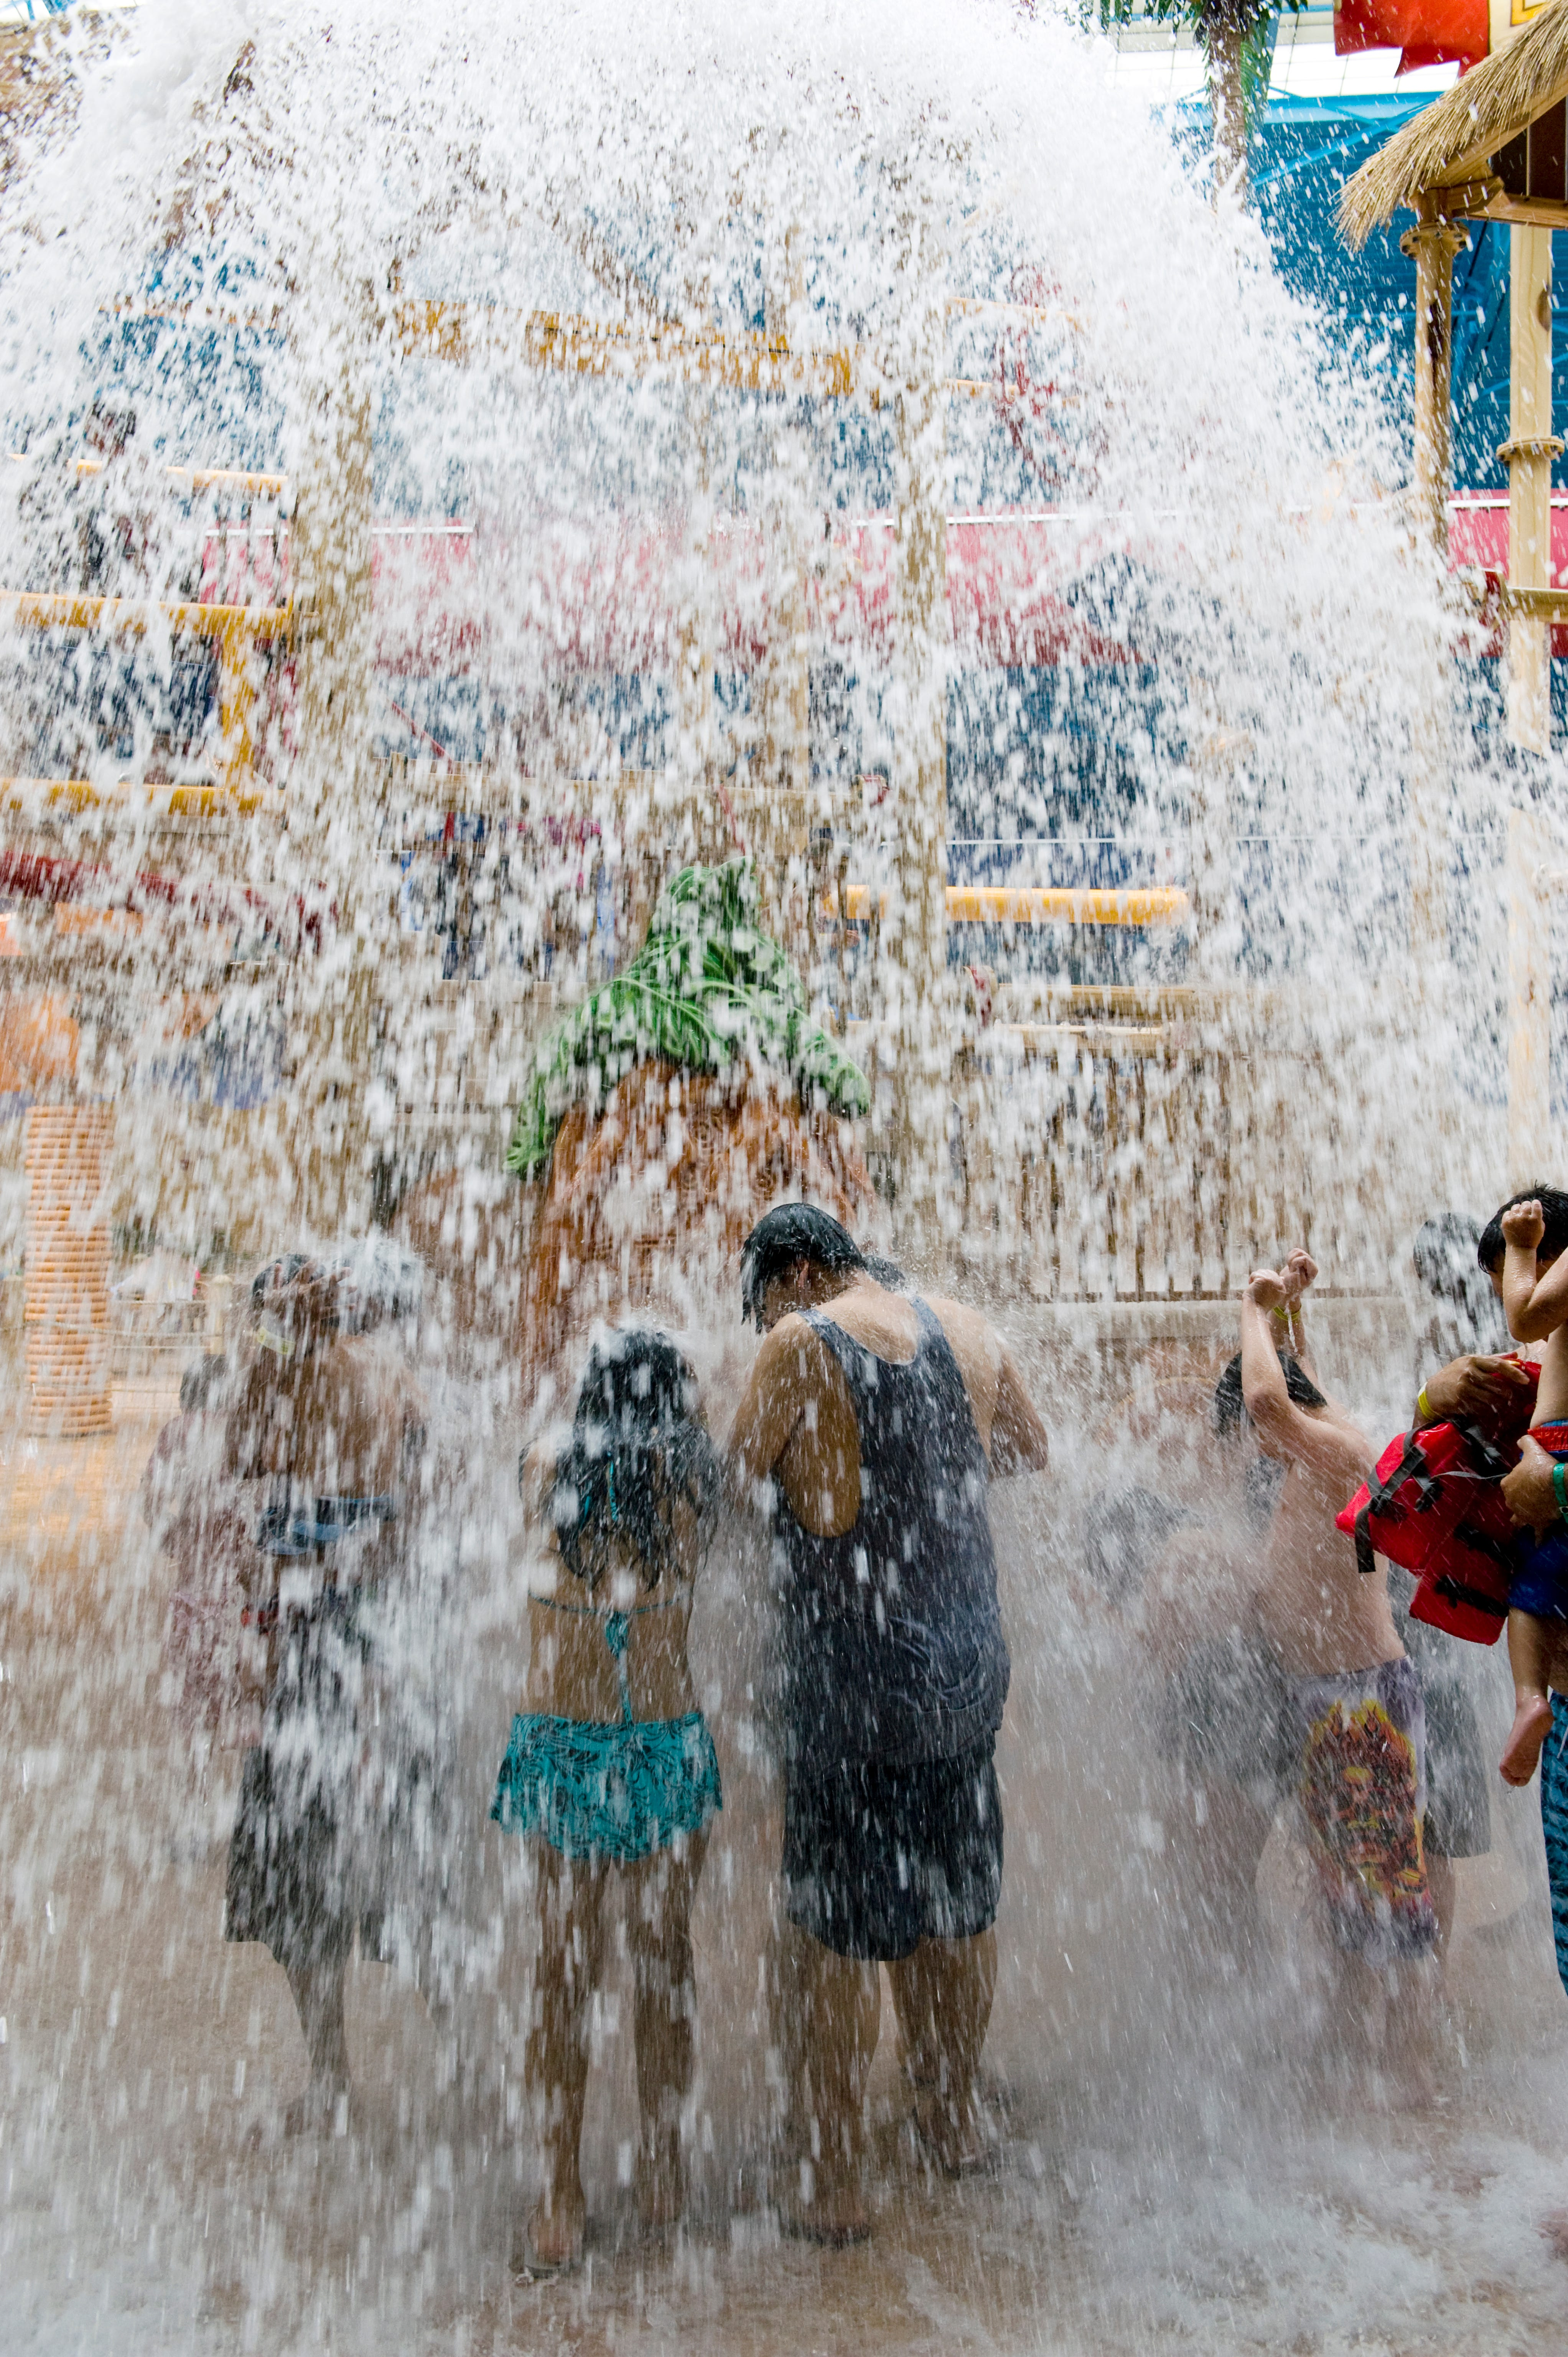 Visitors enjoy the indoor water park at Sahara Sam. The park offers indoor fun throughout the year and outdoor fun during the summer.